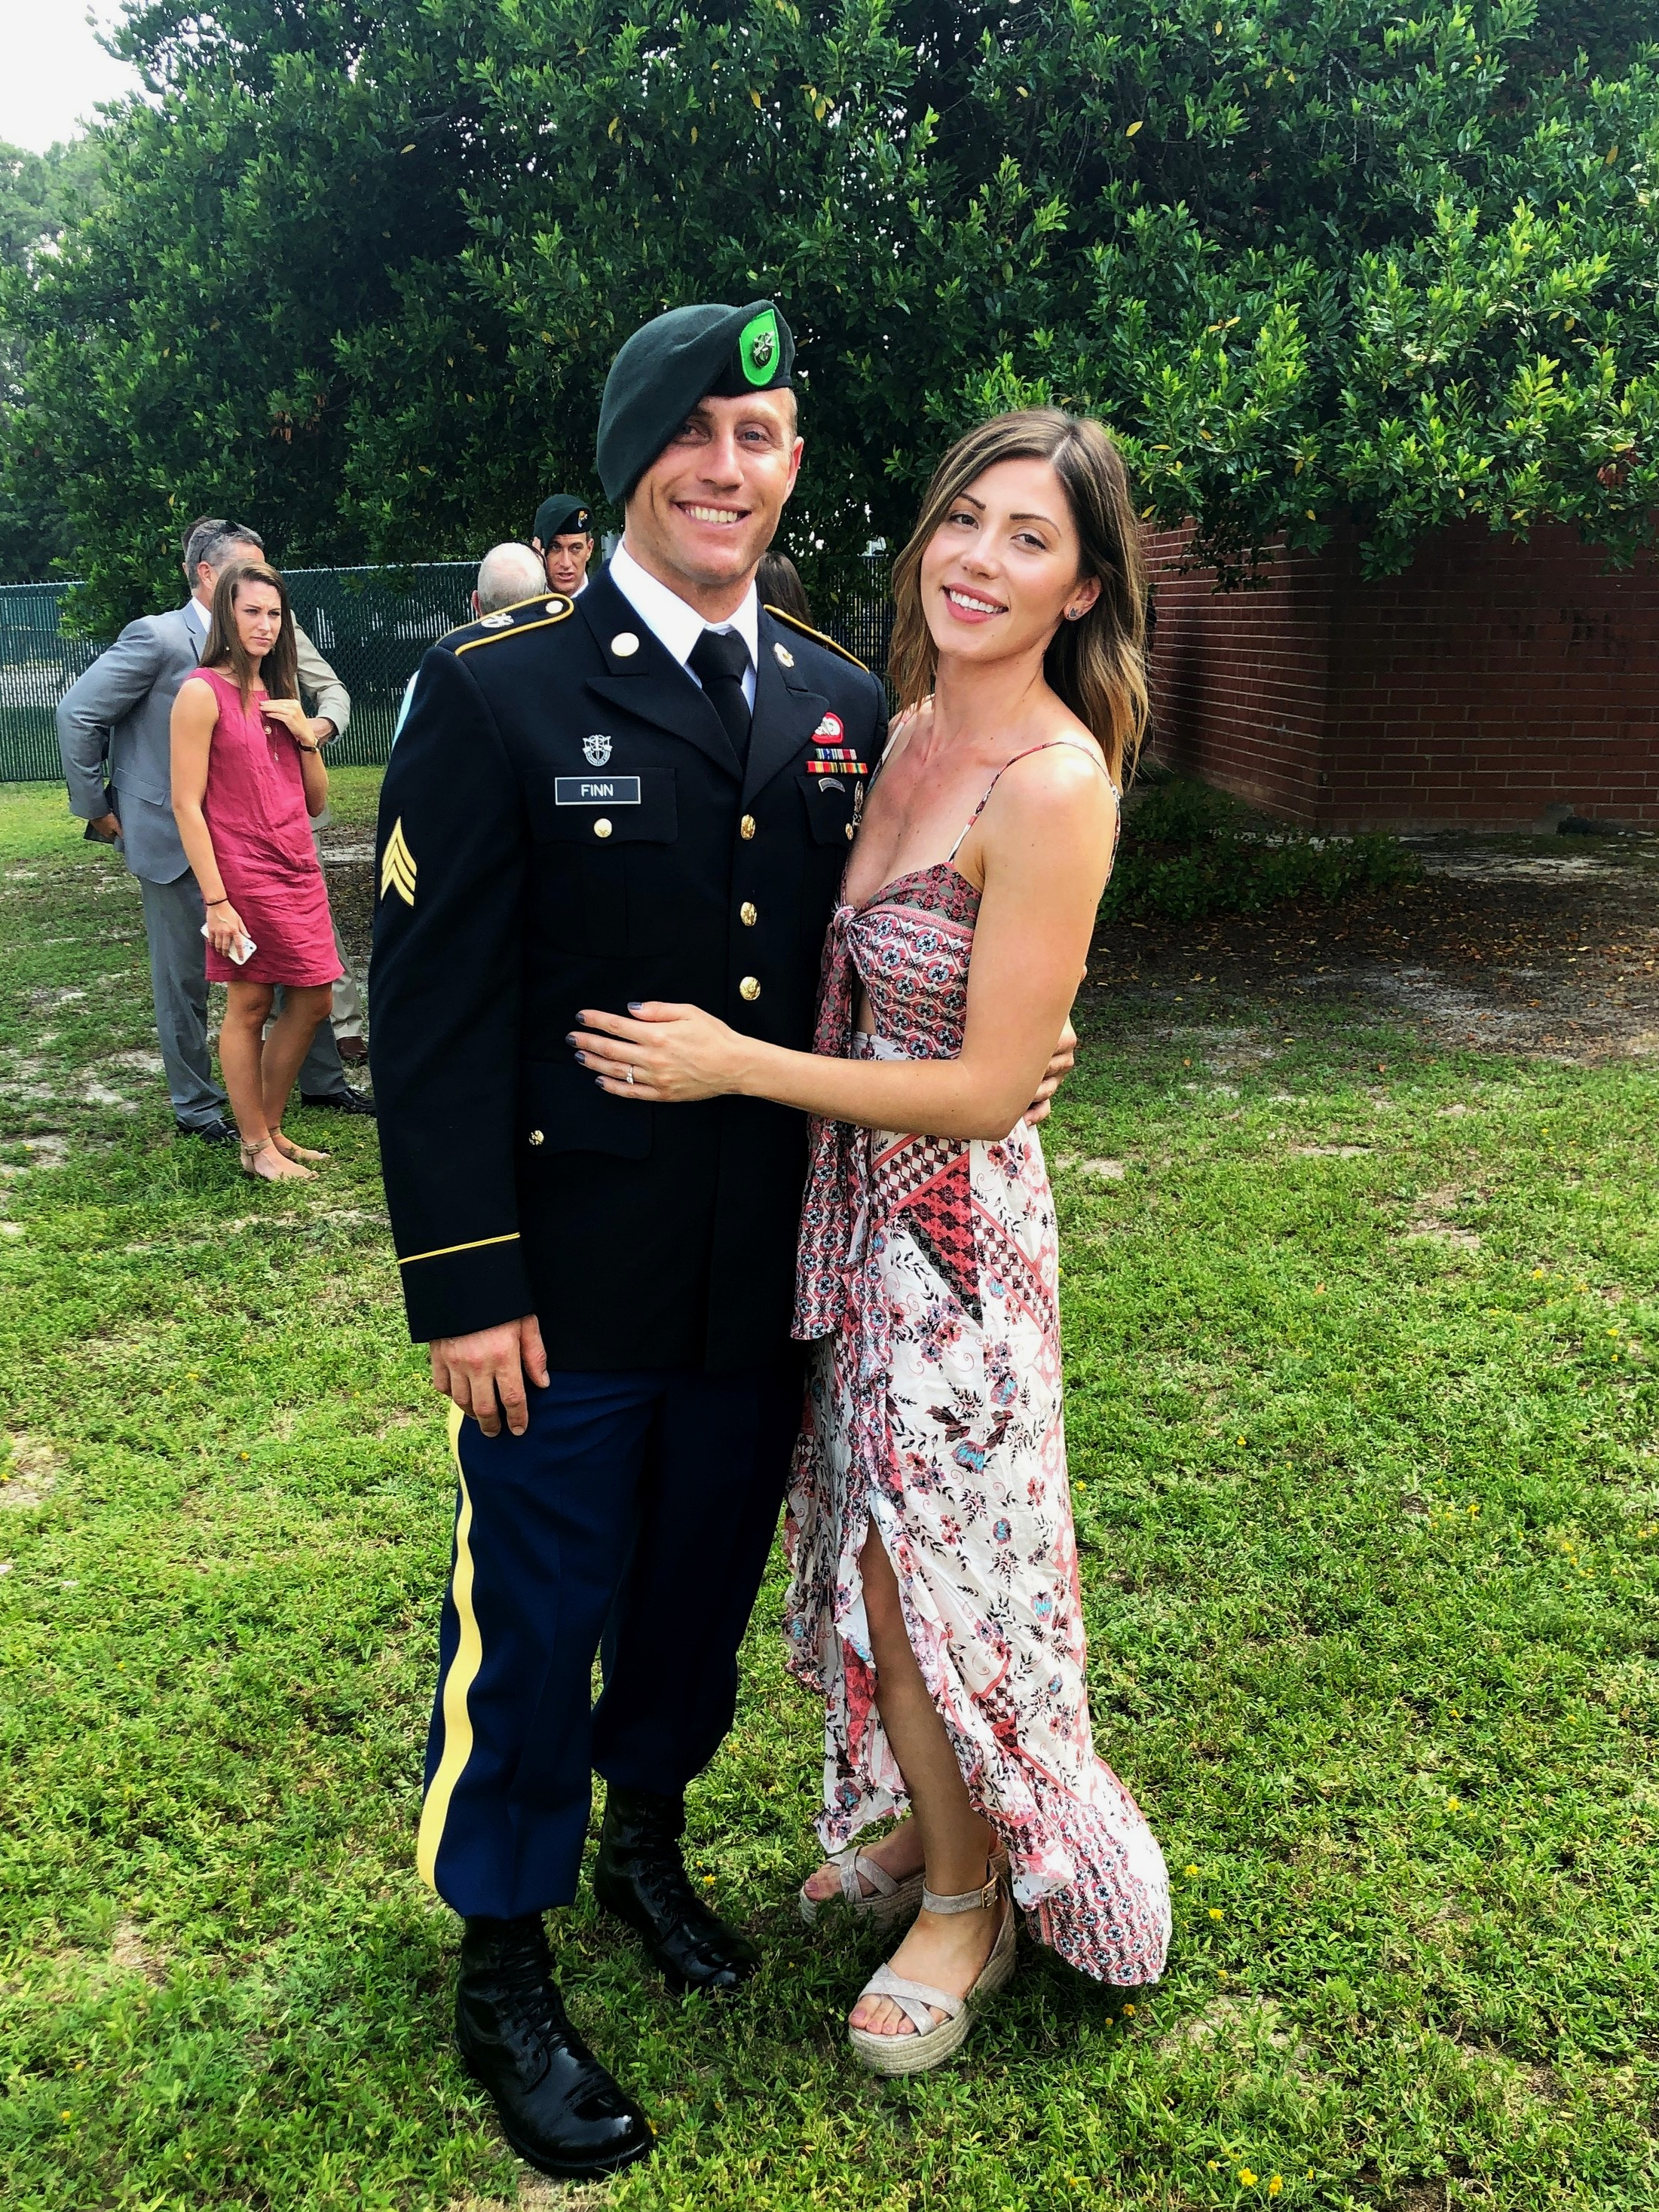 COACH BRIAN IS A GREEN BERET! - Congratulations to Coach Brian, whose hard work and perseverance have paid off. What a stud. Plus, he's getting married to fiancee Aaren soon. Brian, you're all grown up, and we are so proud!